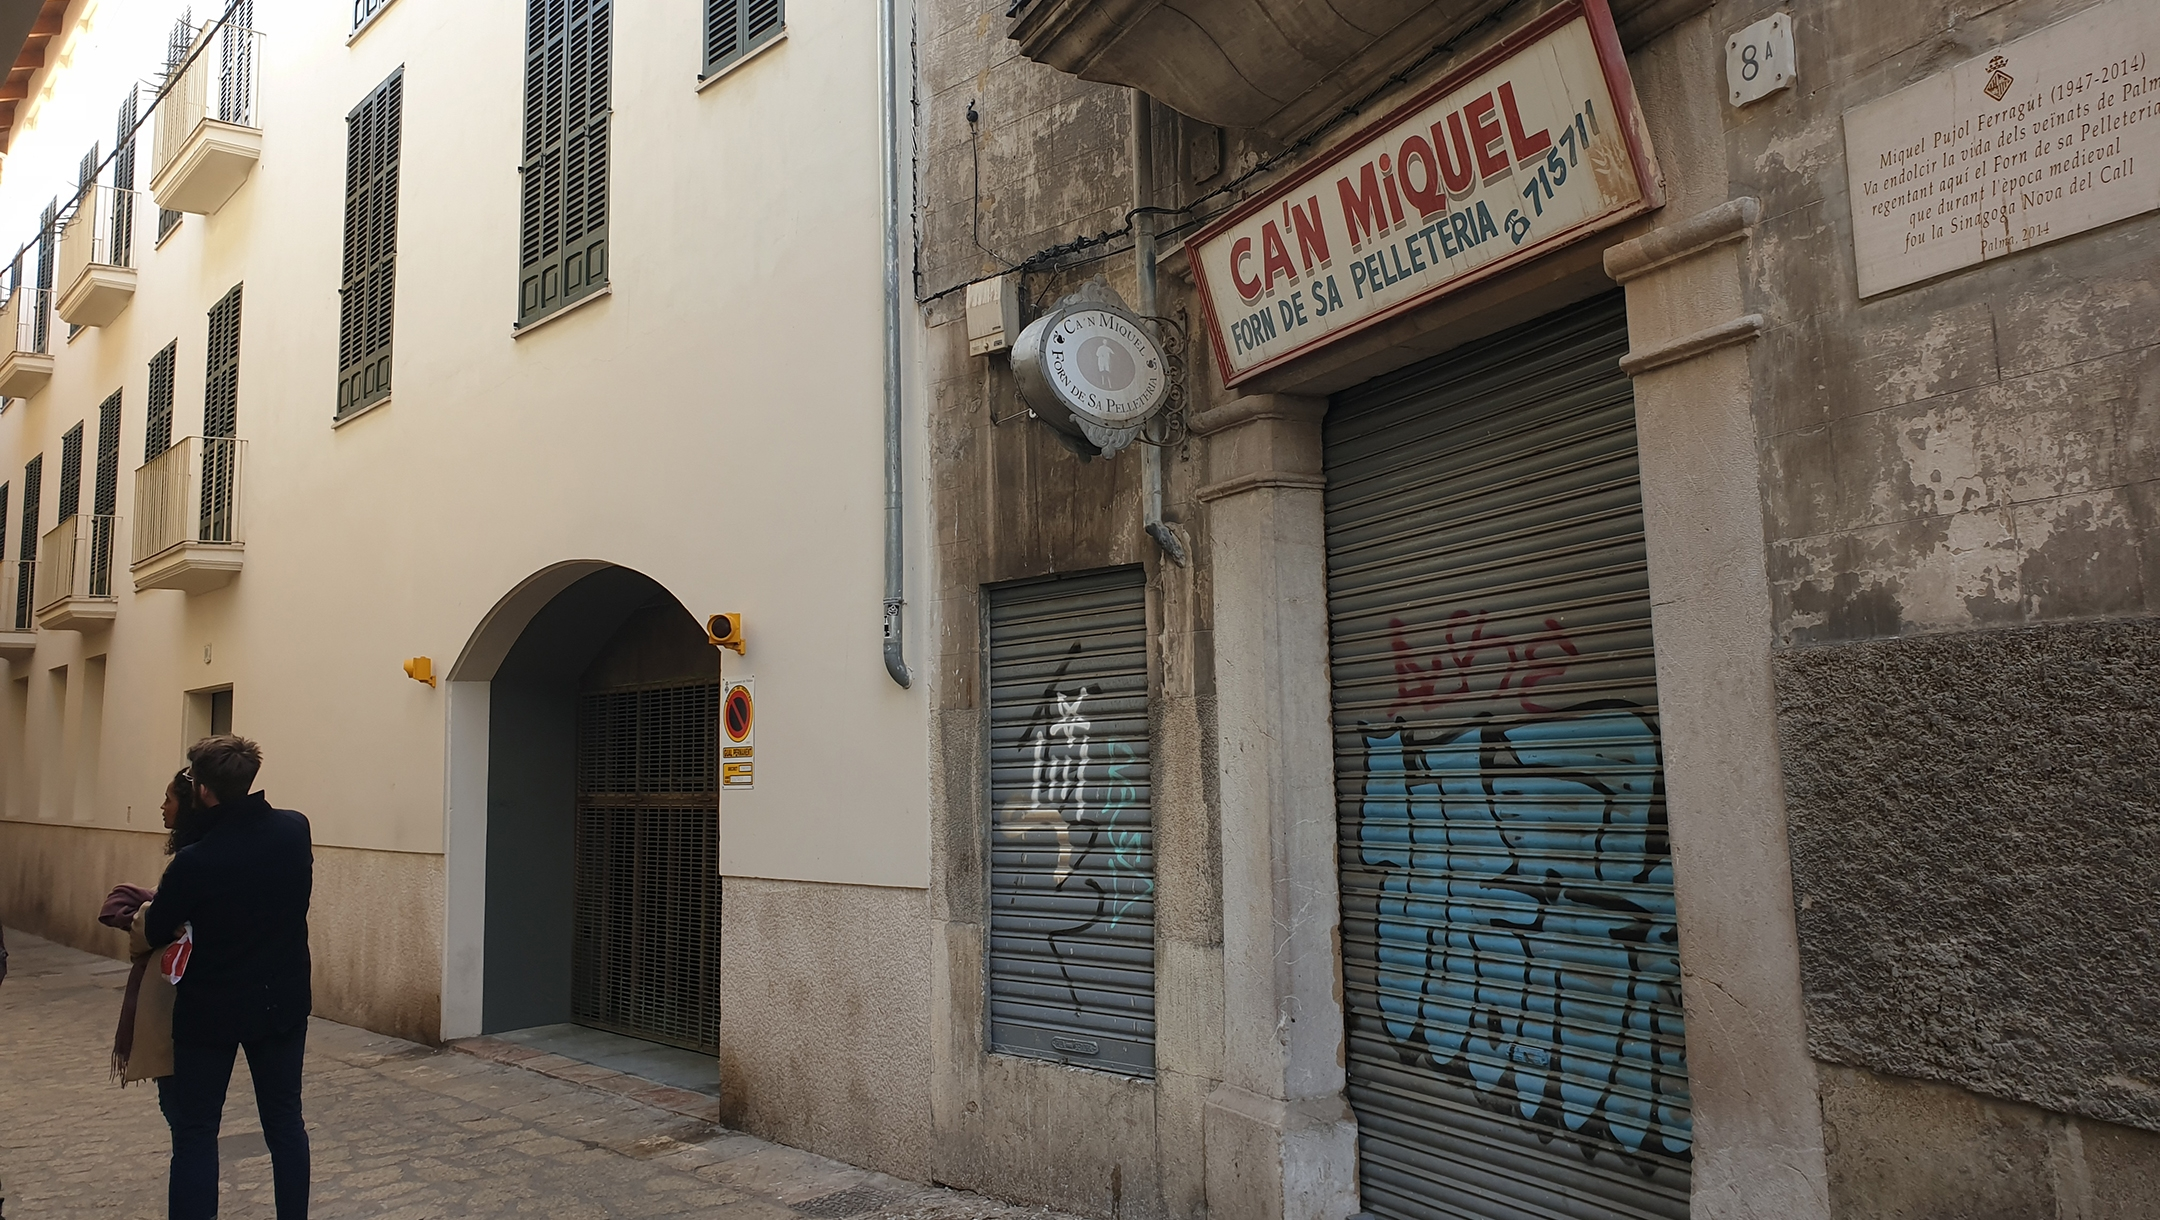 For Mallorca's Jews, their first 'public' sukkah is a triumph over the Spanish Inquisition